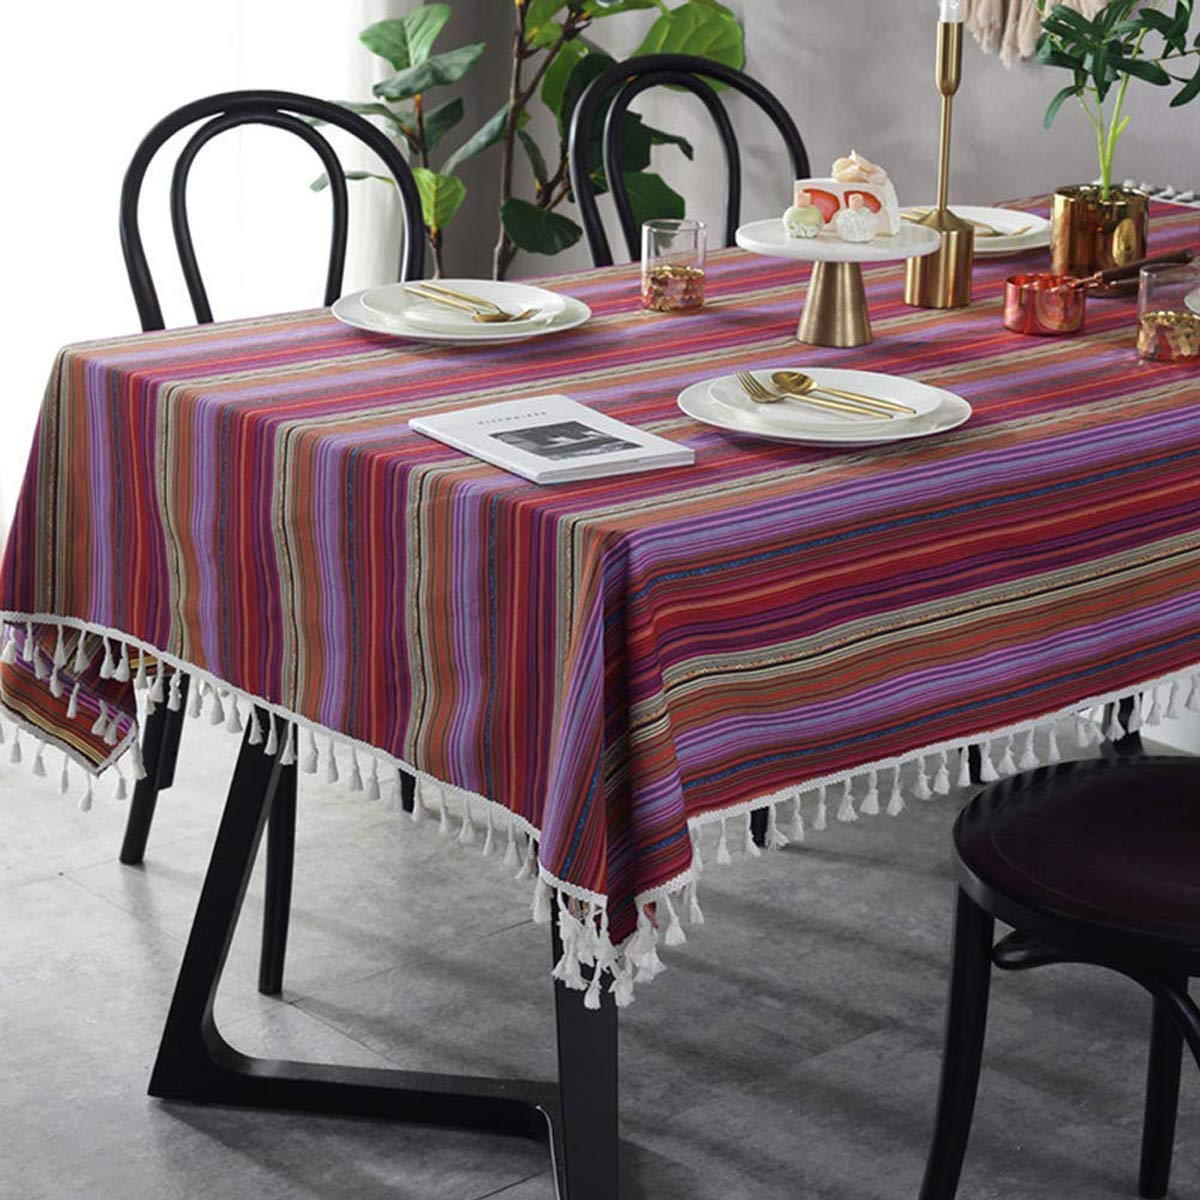 Bringsine Stitching Tassel Tablecloth Heavy Weight Cotton Linen Fabric Dust-Proof Table Cover Kitchen Dinning Tabletop Decoration(Round,60 Inch, Rainbow)